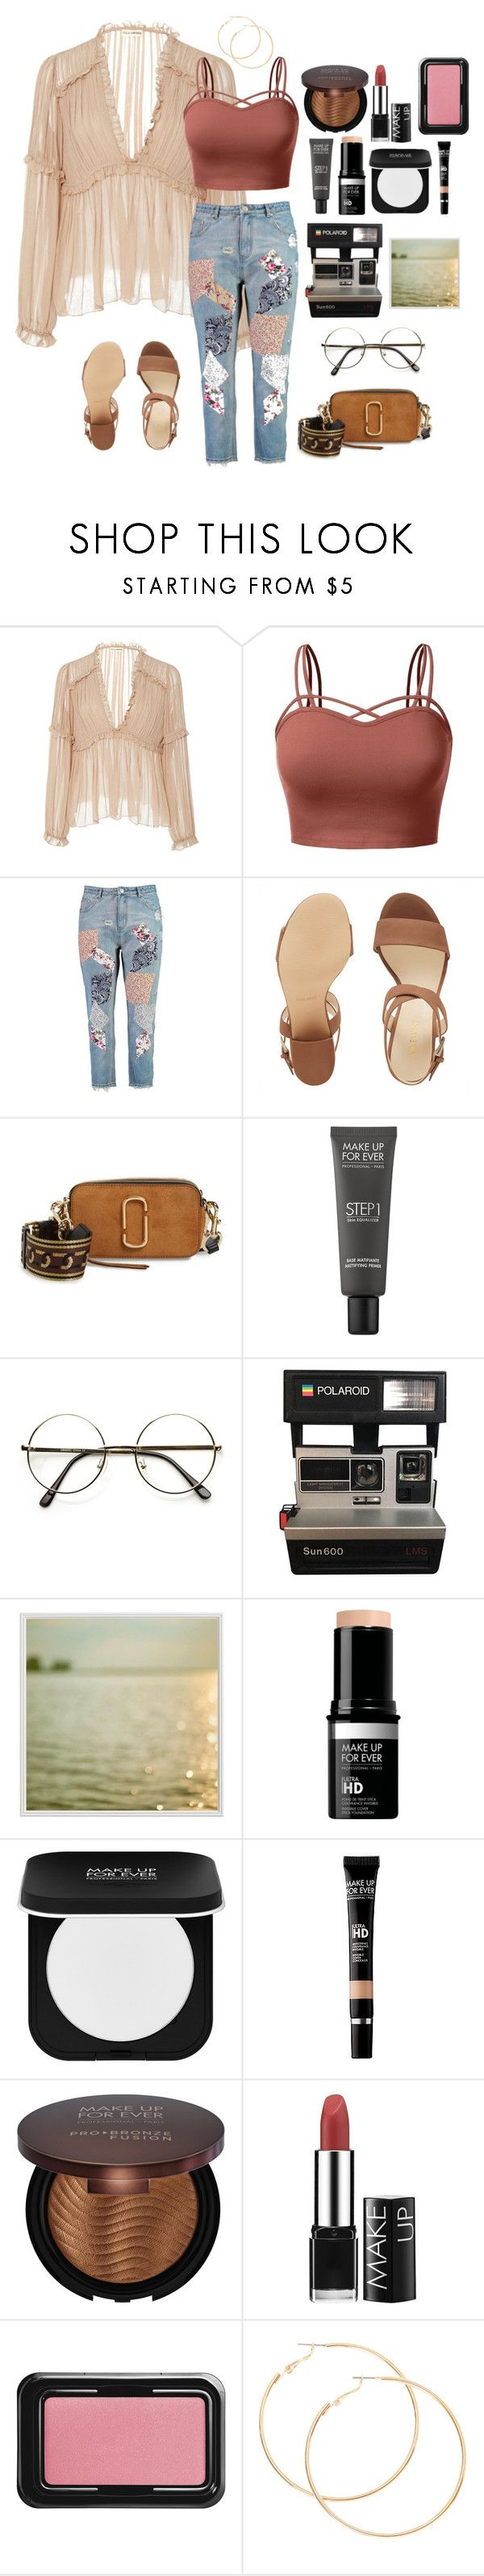 """Untitled #469"" by nuymar ❤ liked on Polyvore featuring Ulla Johnson, J.TOMSON, Boohoo, Nine West, Marc Jacobs, MAKE UP FOR EVER and Pottery Barn"